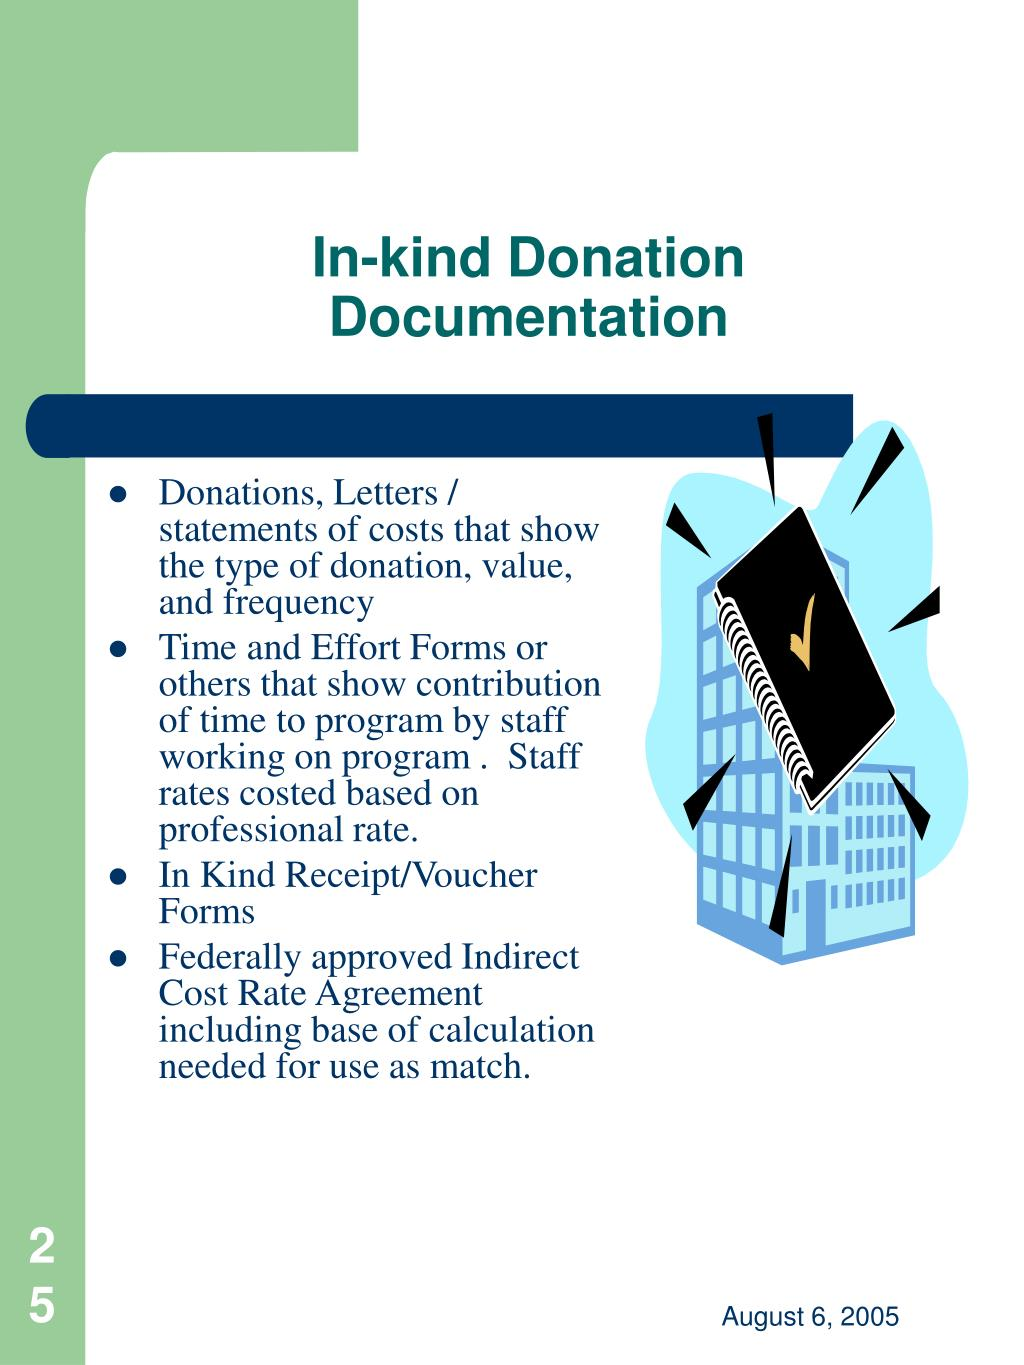 In-kind Donation Documentation